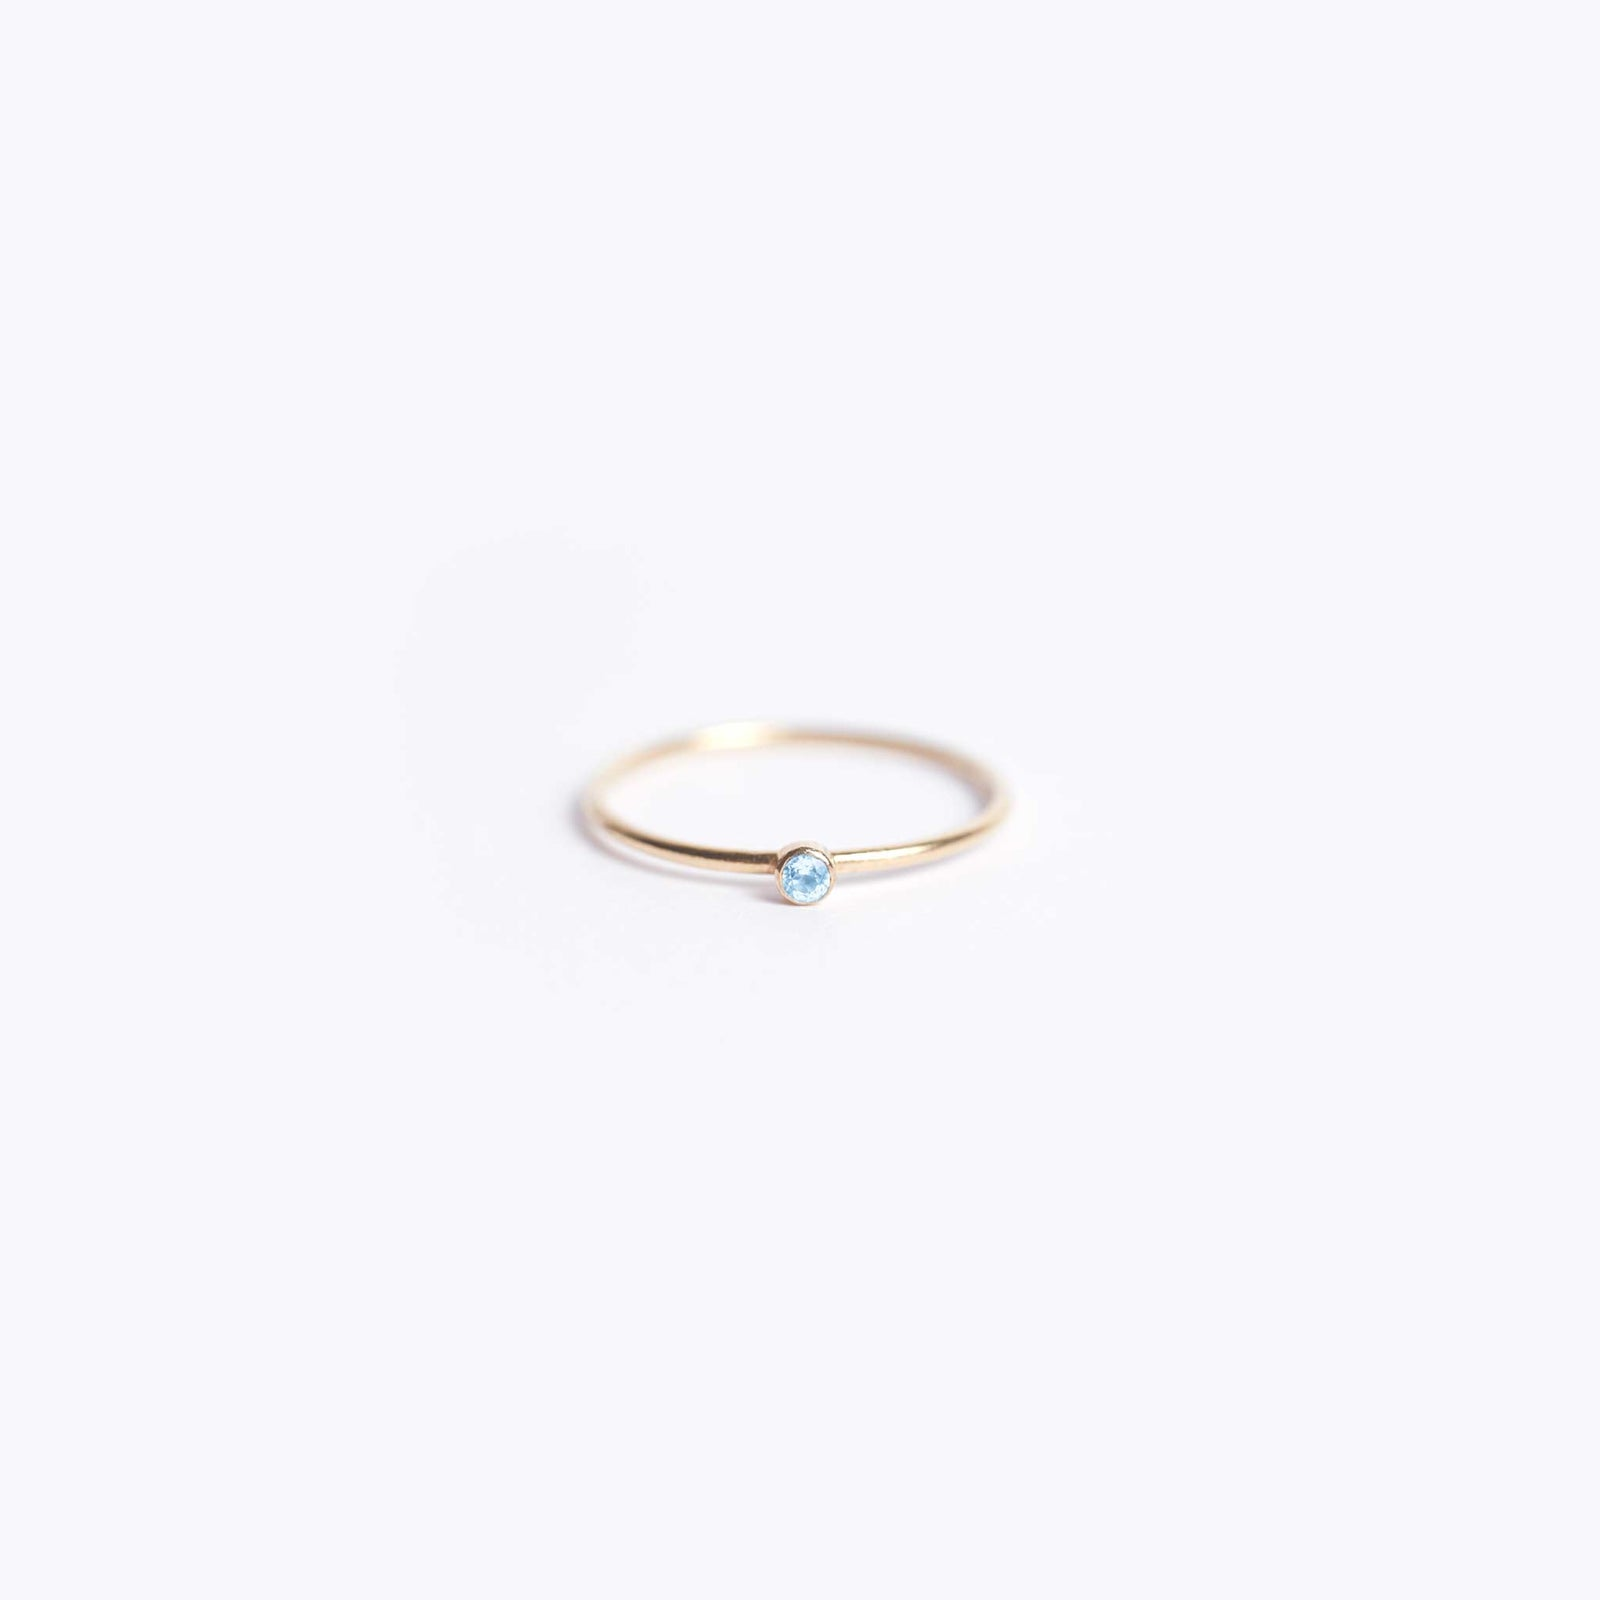 Wanderlust Life Ethically Handmade jewellery made in the UK. Minimalist gold and fine cord jewellery. november birthstone, fine gold blue topaz ring